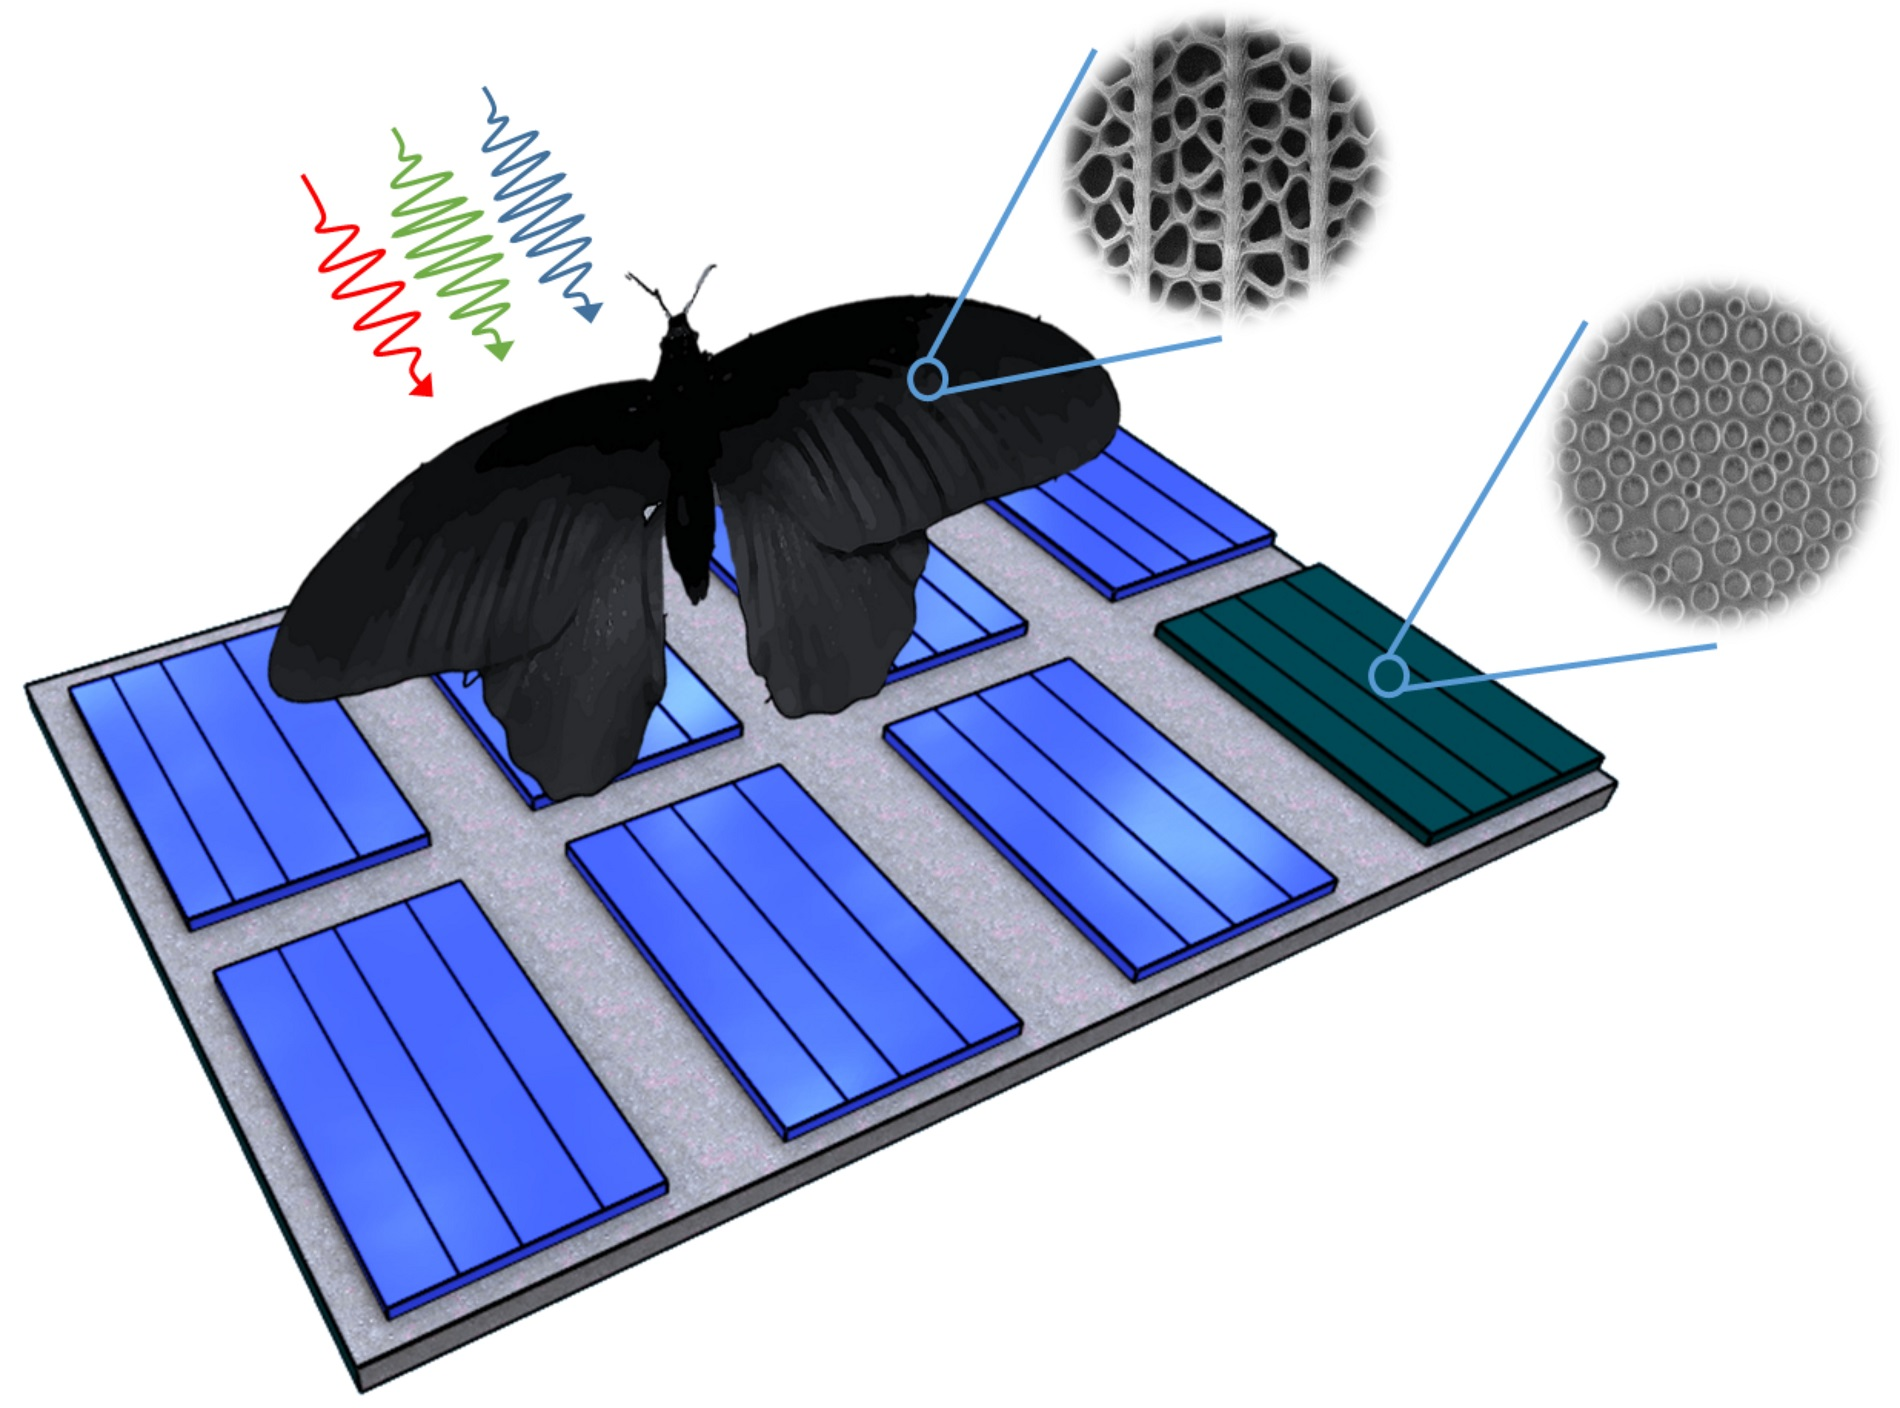 Nanostructures of the wing of Pachliopta aristolochiae can be transferred to solar cells and enhance their absorption rates by up to 200 percent